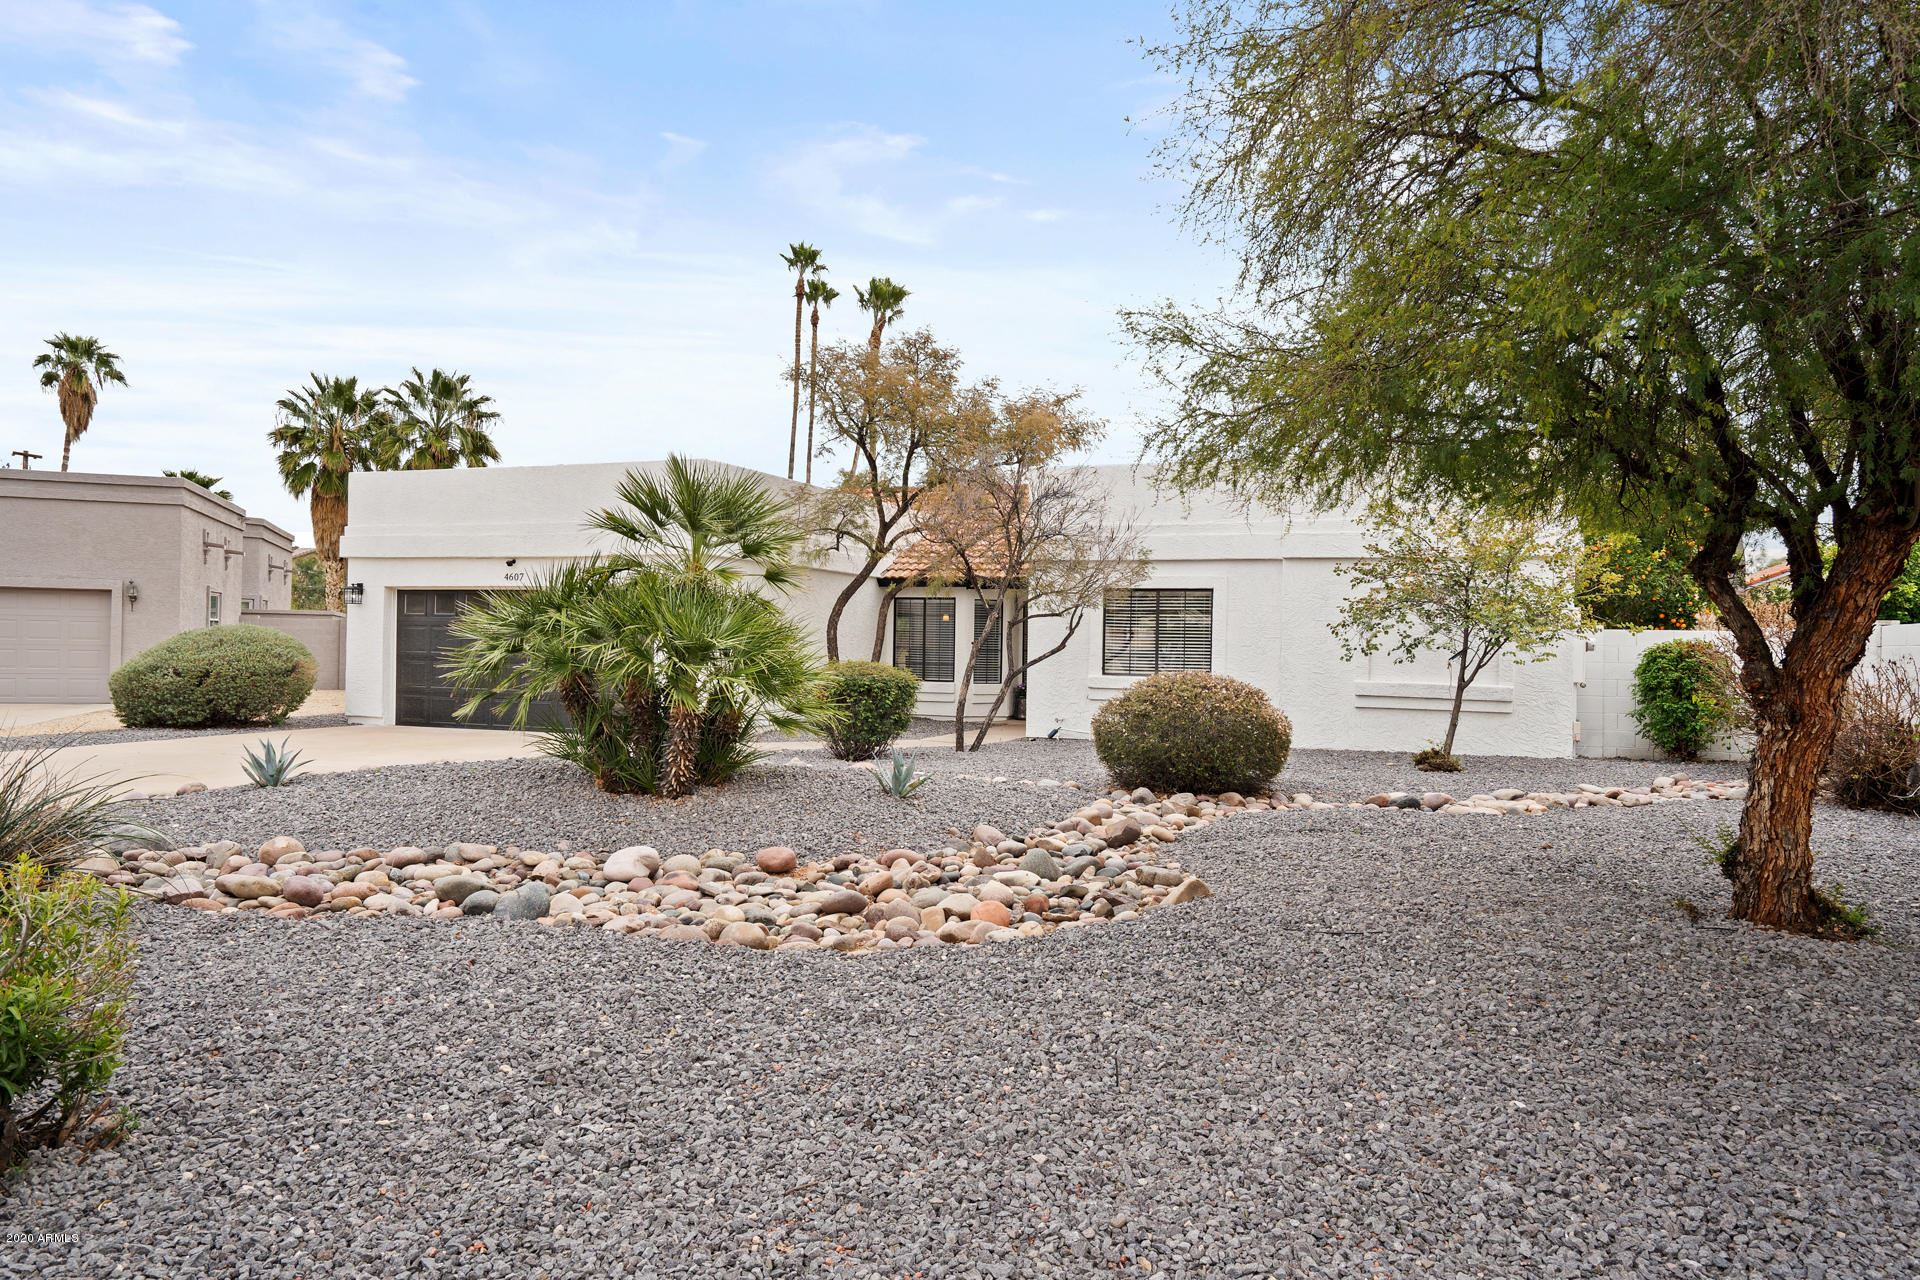 Property Image Of 4607 E Carolina Drive In Phoenix, Az